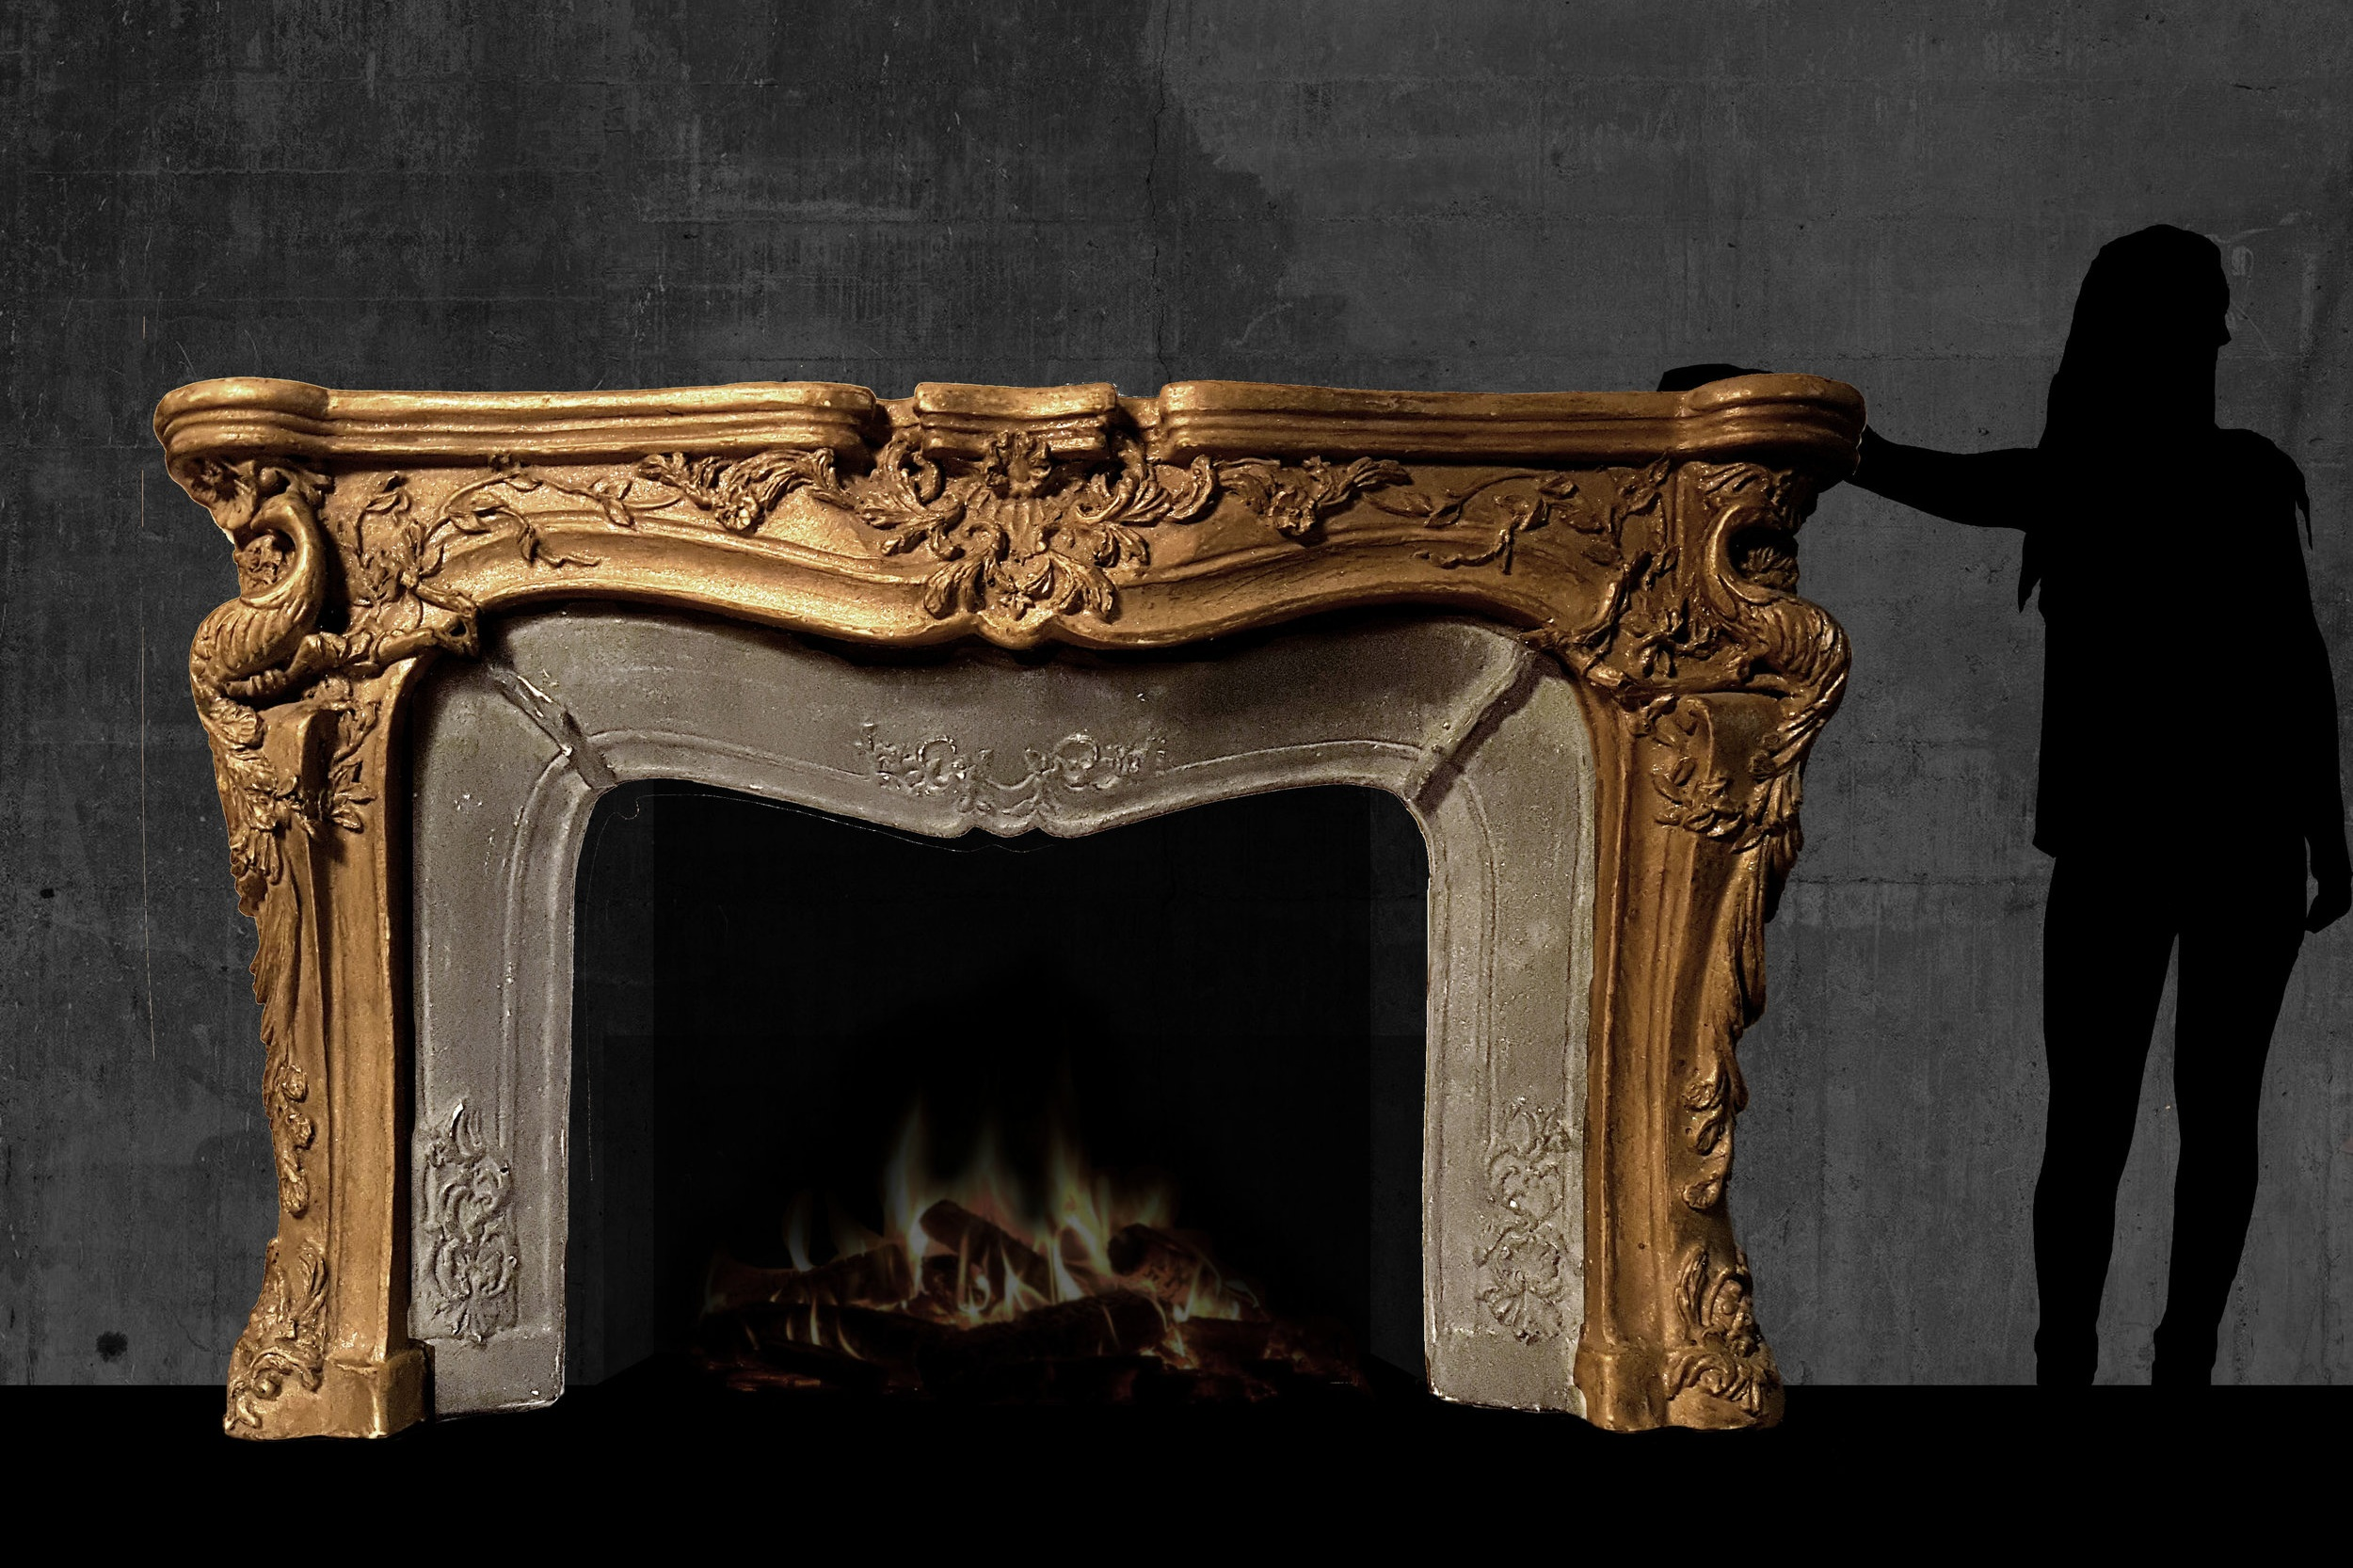 This client requested no photographs be taken of the works in their home. Hayley offers a premium privacy service to clients who make this request. This image is a mock-up of the fireplace mantel. Please enquire if you would like to know more about this project.